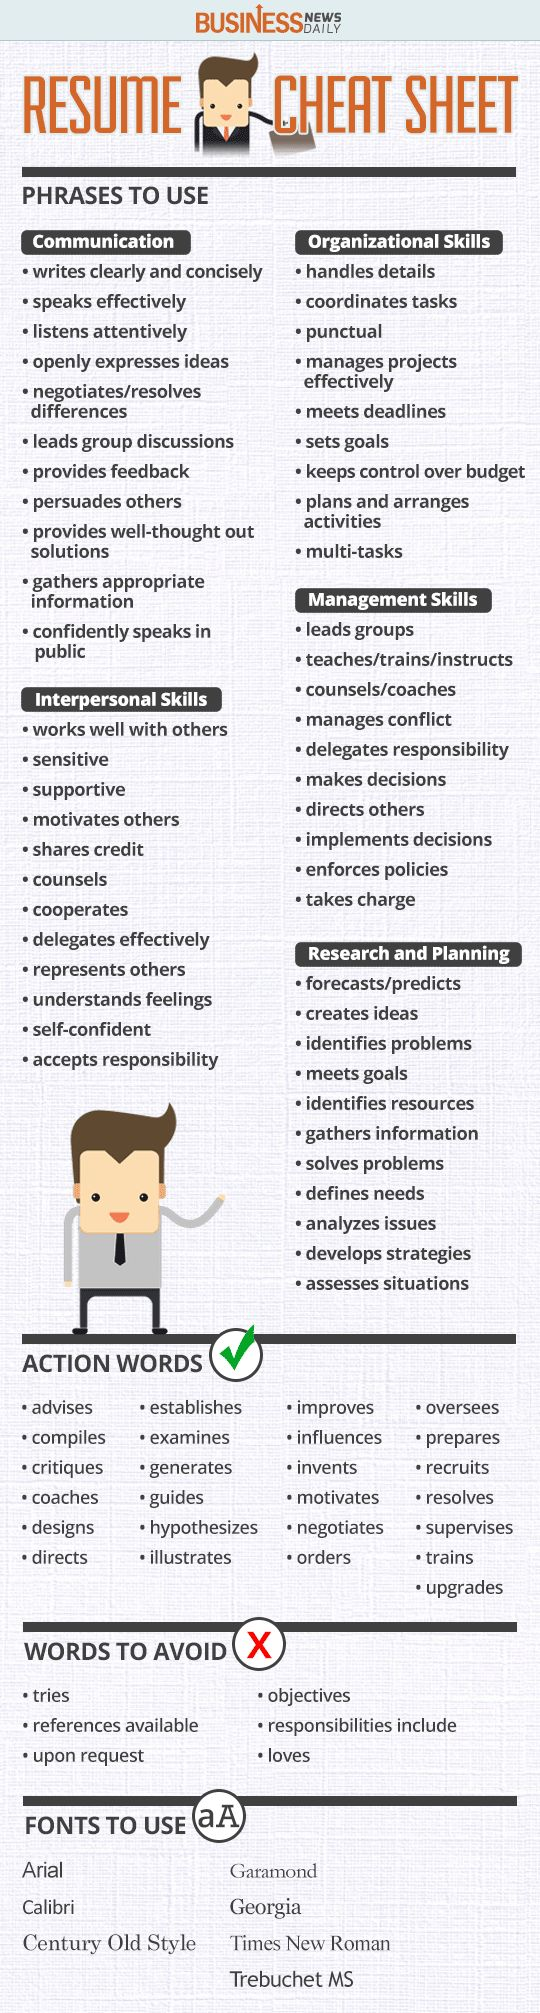 Opposenewapstandardsus  Personable  Ideas About Resume On Pinterest  Cv Format Resume Cv And  With Interesting Resume Cheat Sheet Infographic Andrews Almost Done With A Complete Unit On Employment Which With Captivating Director Of It Resume Also Information Technology Resumes In Addition Words To Use For Resume And Best Online Resume Service As Well As What To Put In The Summary Of A Resume Additionally Resume Guideline From Pinterestcom With Opposenewapstandardsus  Interesting  Ideas About Resume On Pinterest  Cv Format Resume Cv And  With Captivating Resume Cheat Sheet Infographic Andrews Almost Done With A Complete Unit On Employment Which And Personable Director Of It Resume Also Information Technology Resumes In Addition Words To Use For Resume From Pinterestcom